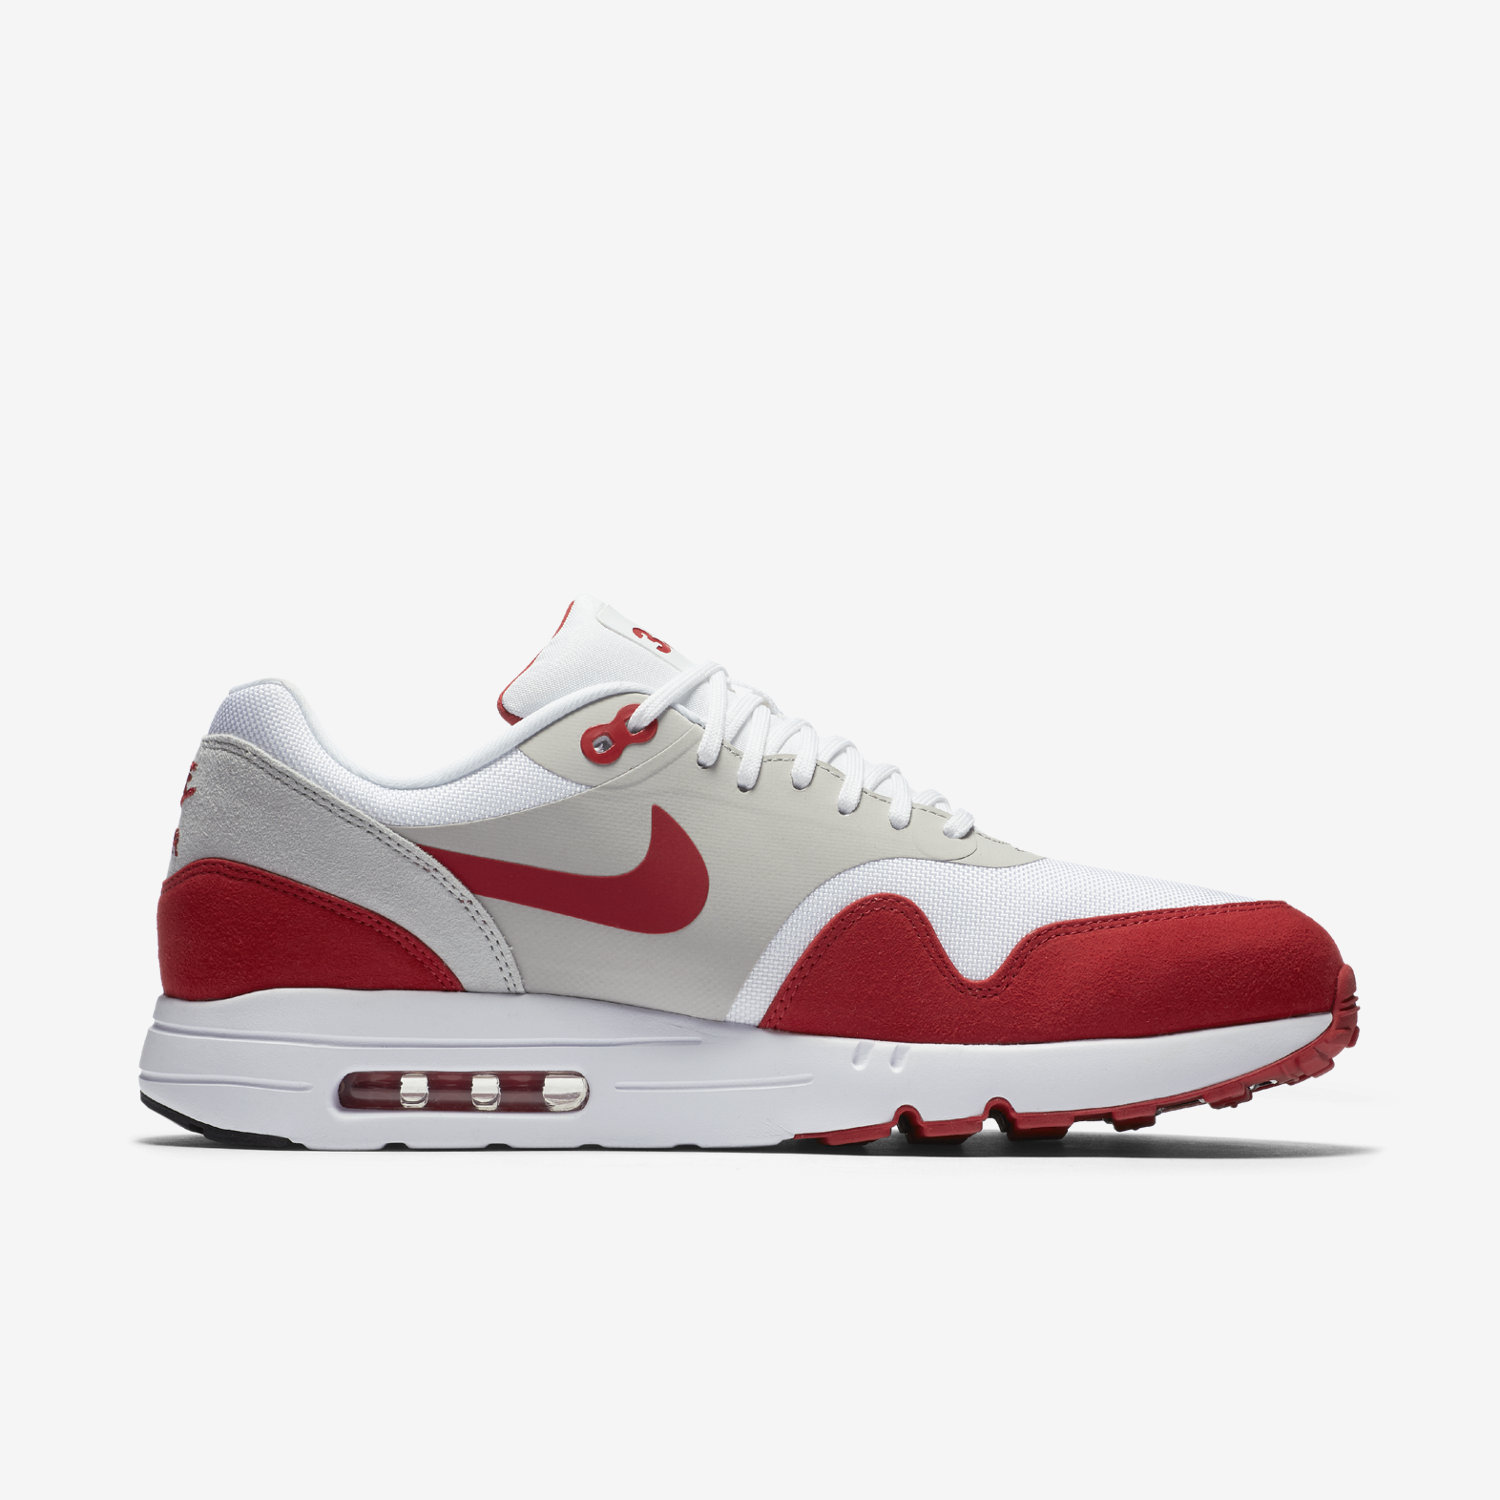 Nike Air Max 1 Jewel Colorways, Release Dates, Pricing